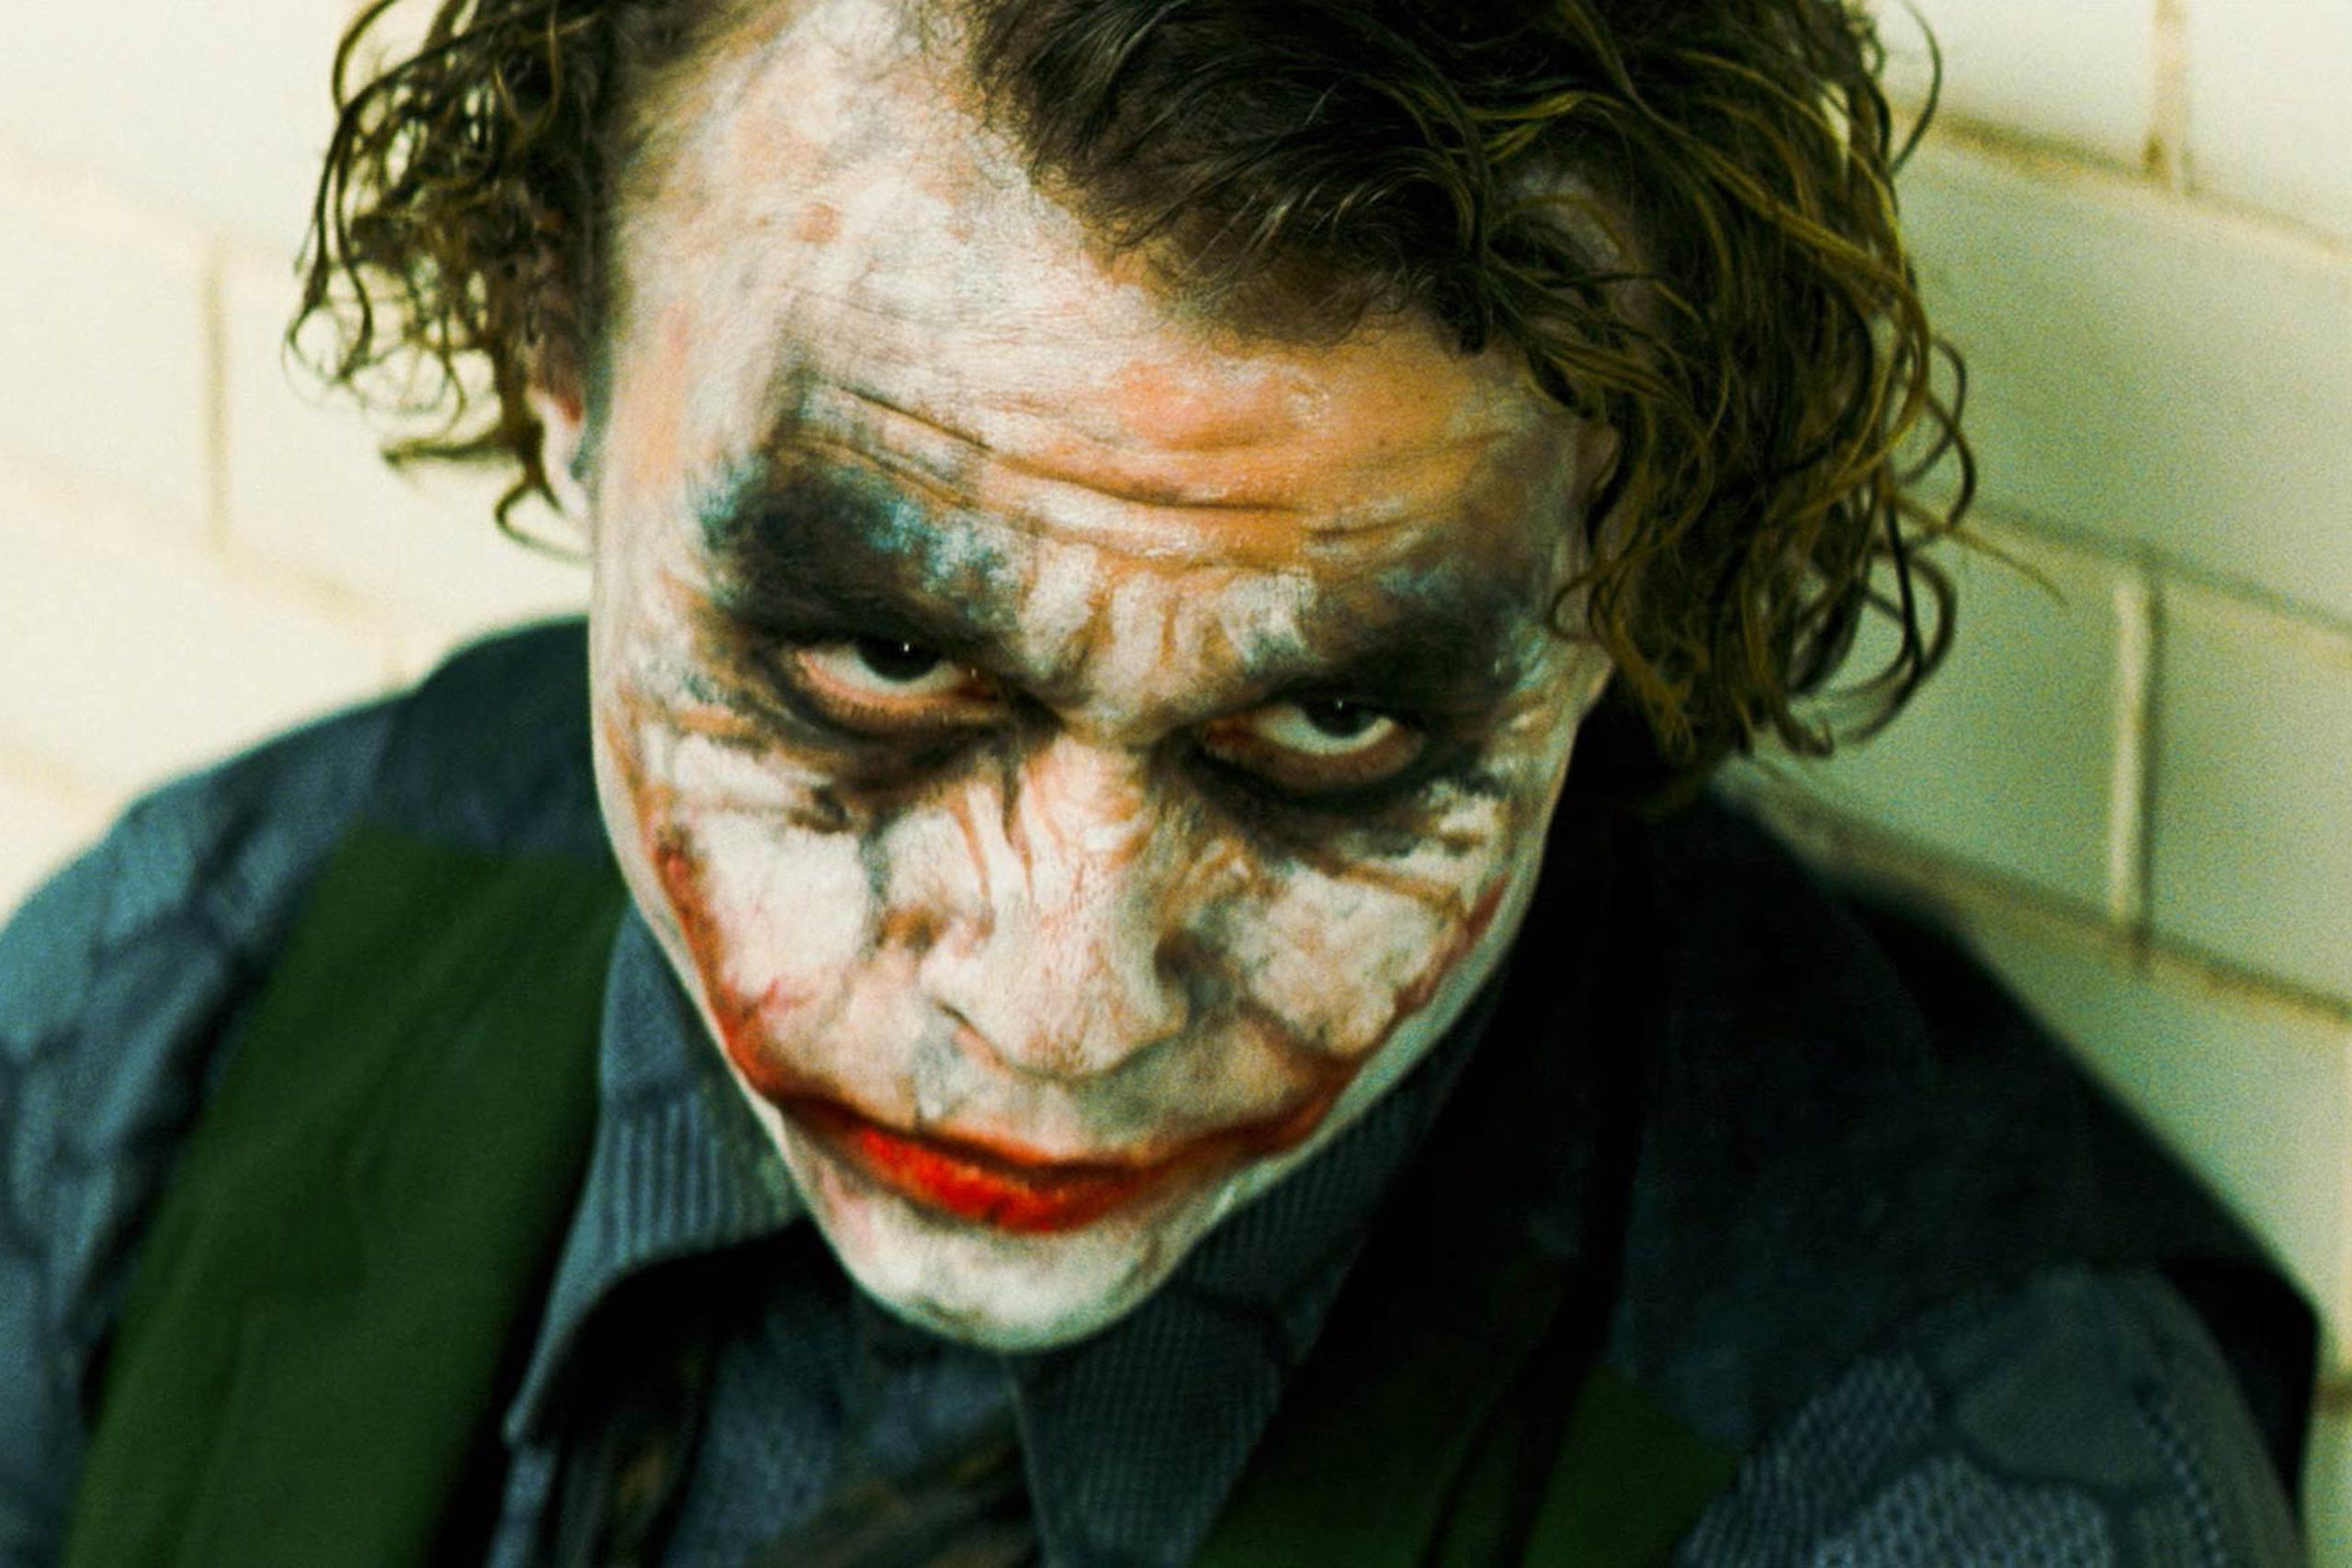 The Dark Knight In Christopher Nolan's 2008 sequel to Batman Begins, Christian Bale returns as Batman, this time joined by Heath Ledger as the ultra-creepy villain known as The Joker.